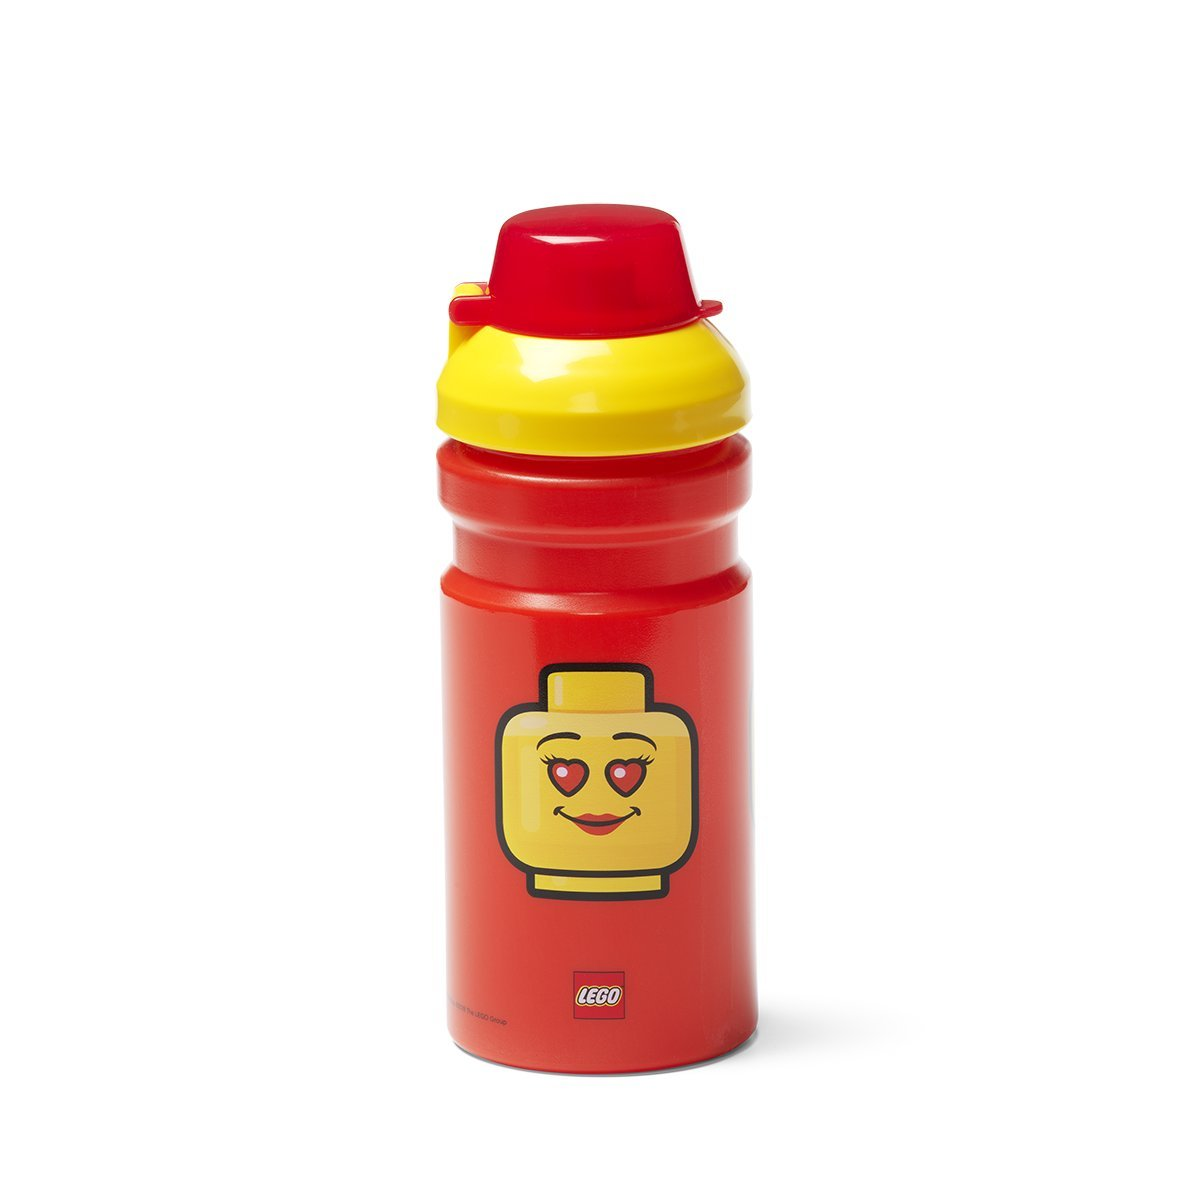 LEGO Ninjago Drinking Bottle, Bright Red, One Size Room Copenhagen 40561733